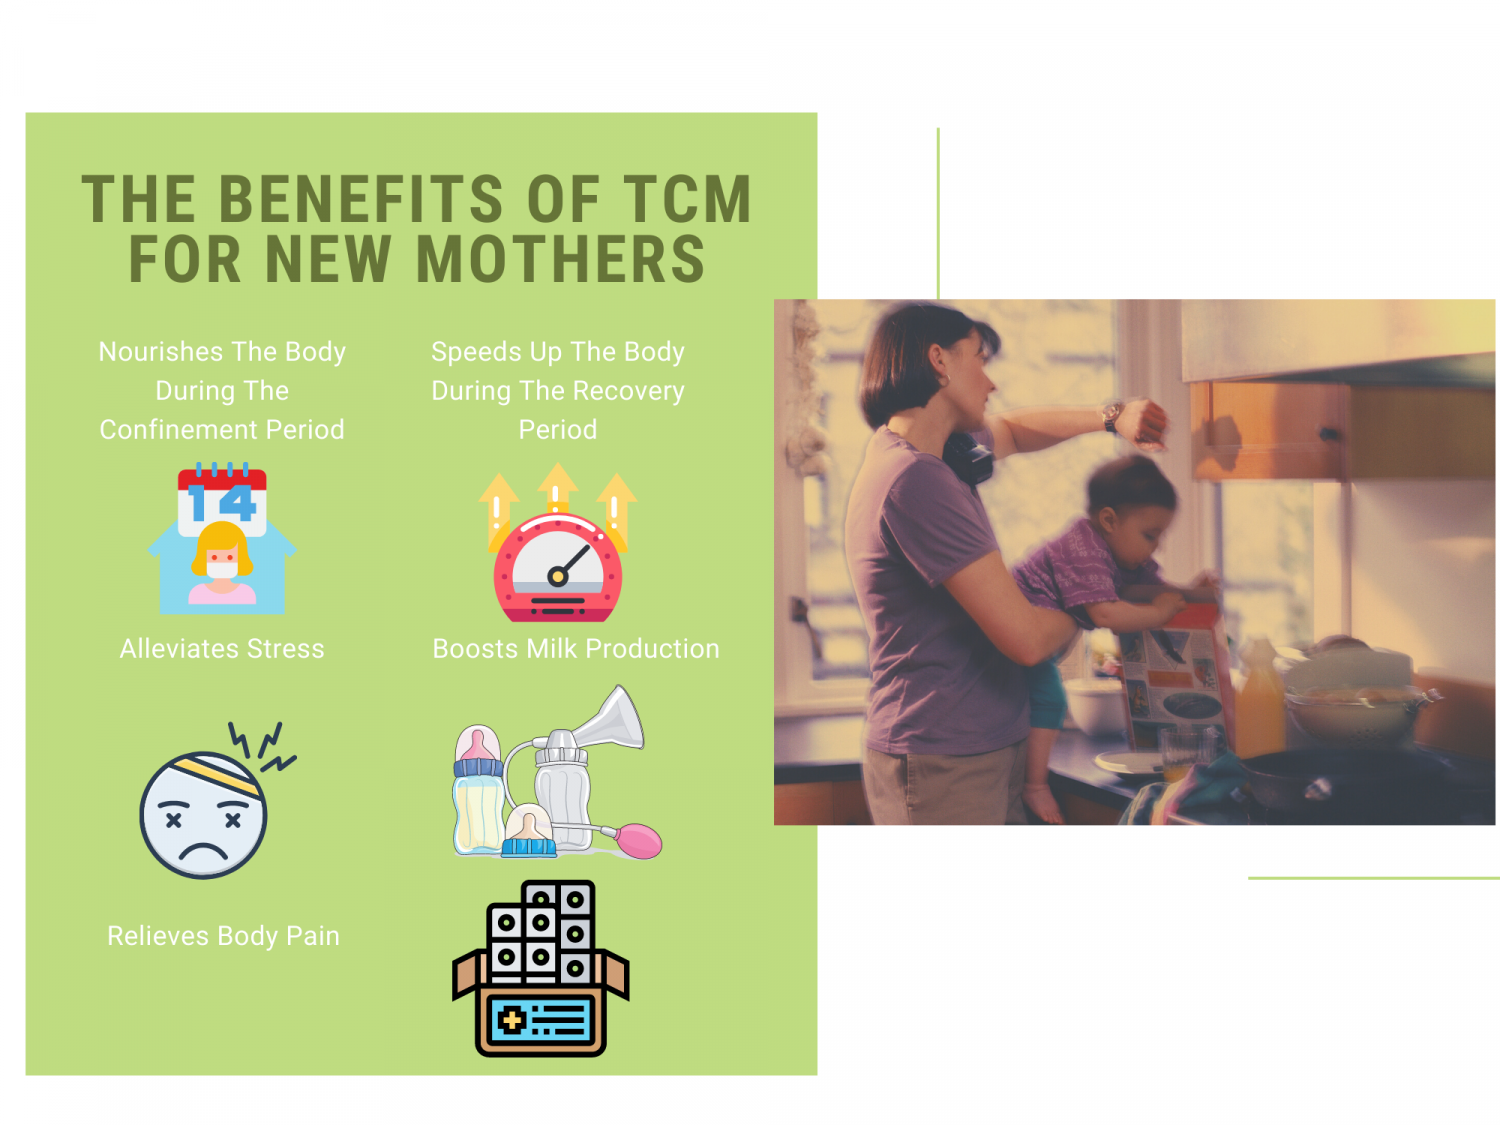 The Benefits of TCM For New Mothers Infographic